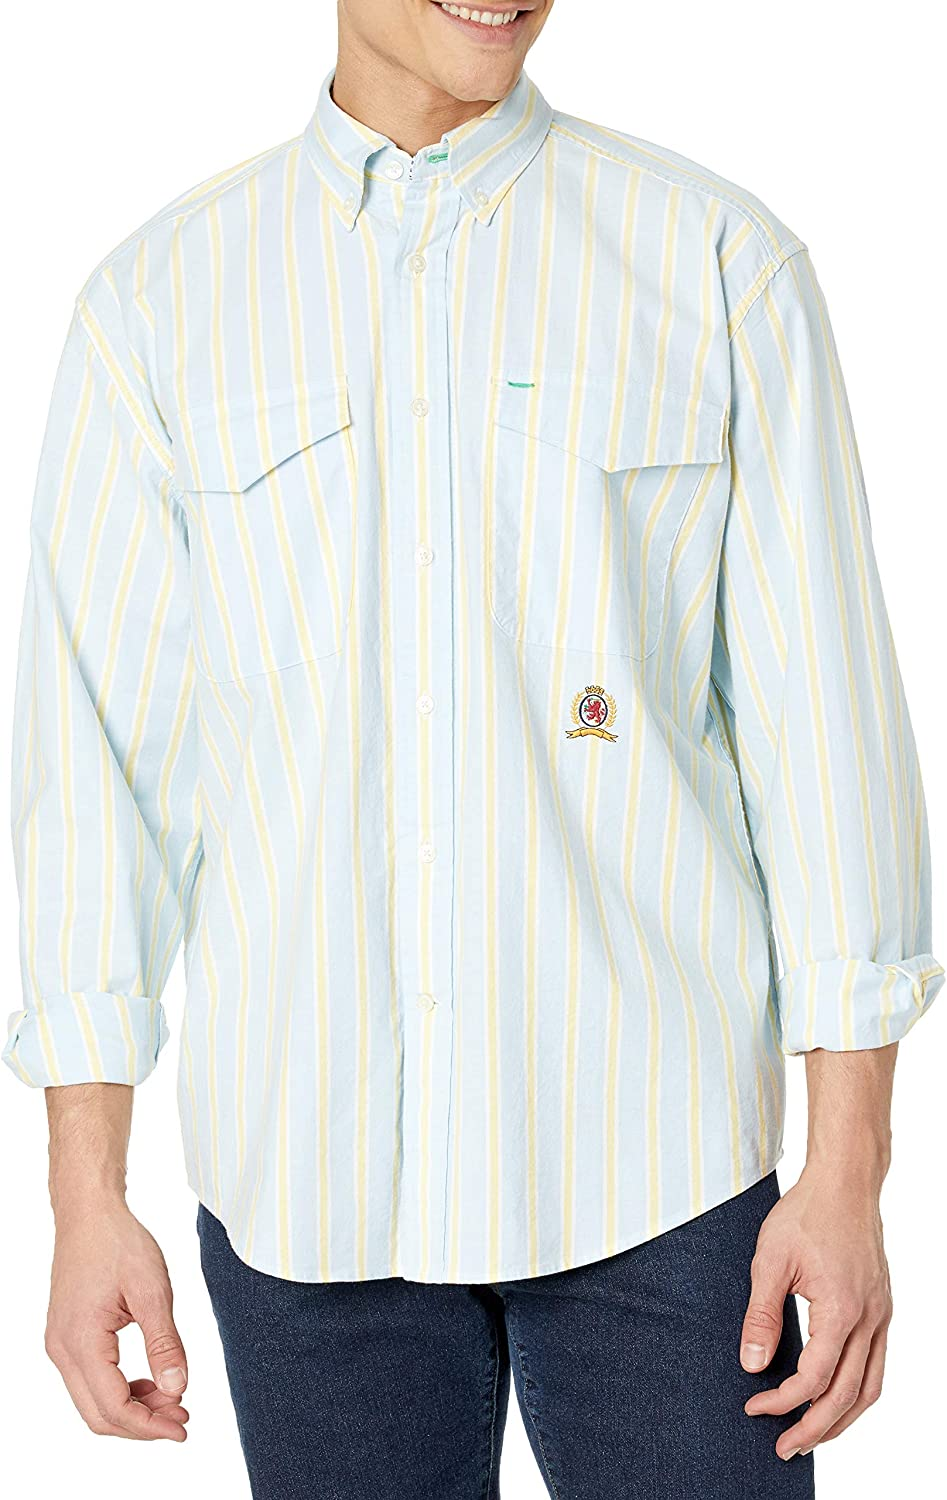 Tommy Hilfiger Men's Iconic Long Sleeve Button Down Shirt in Custom Fit